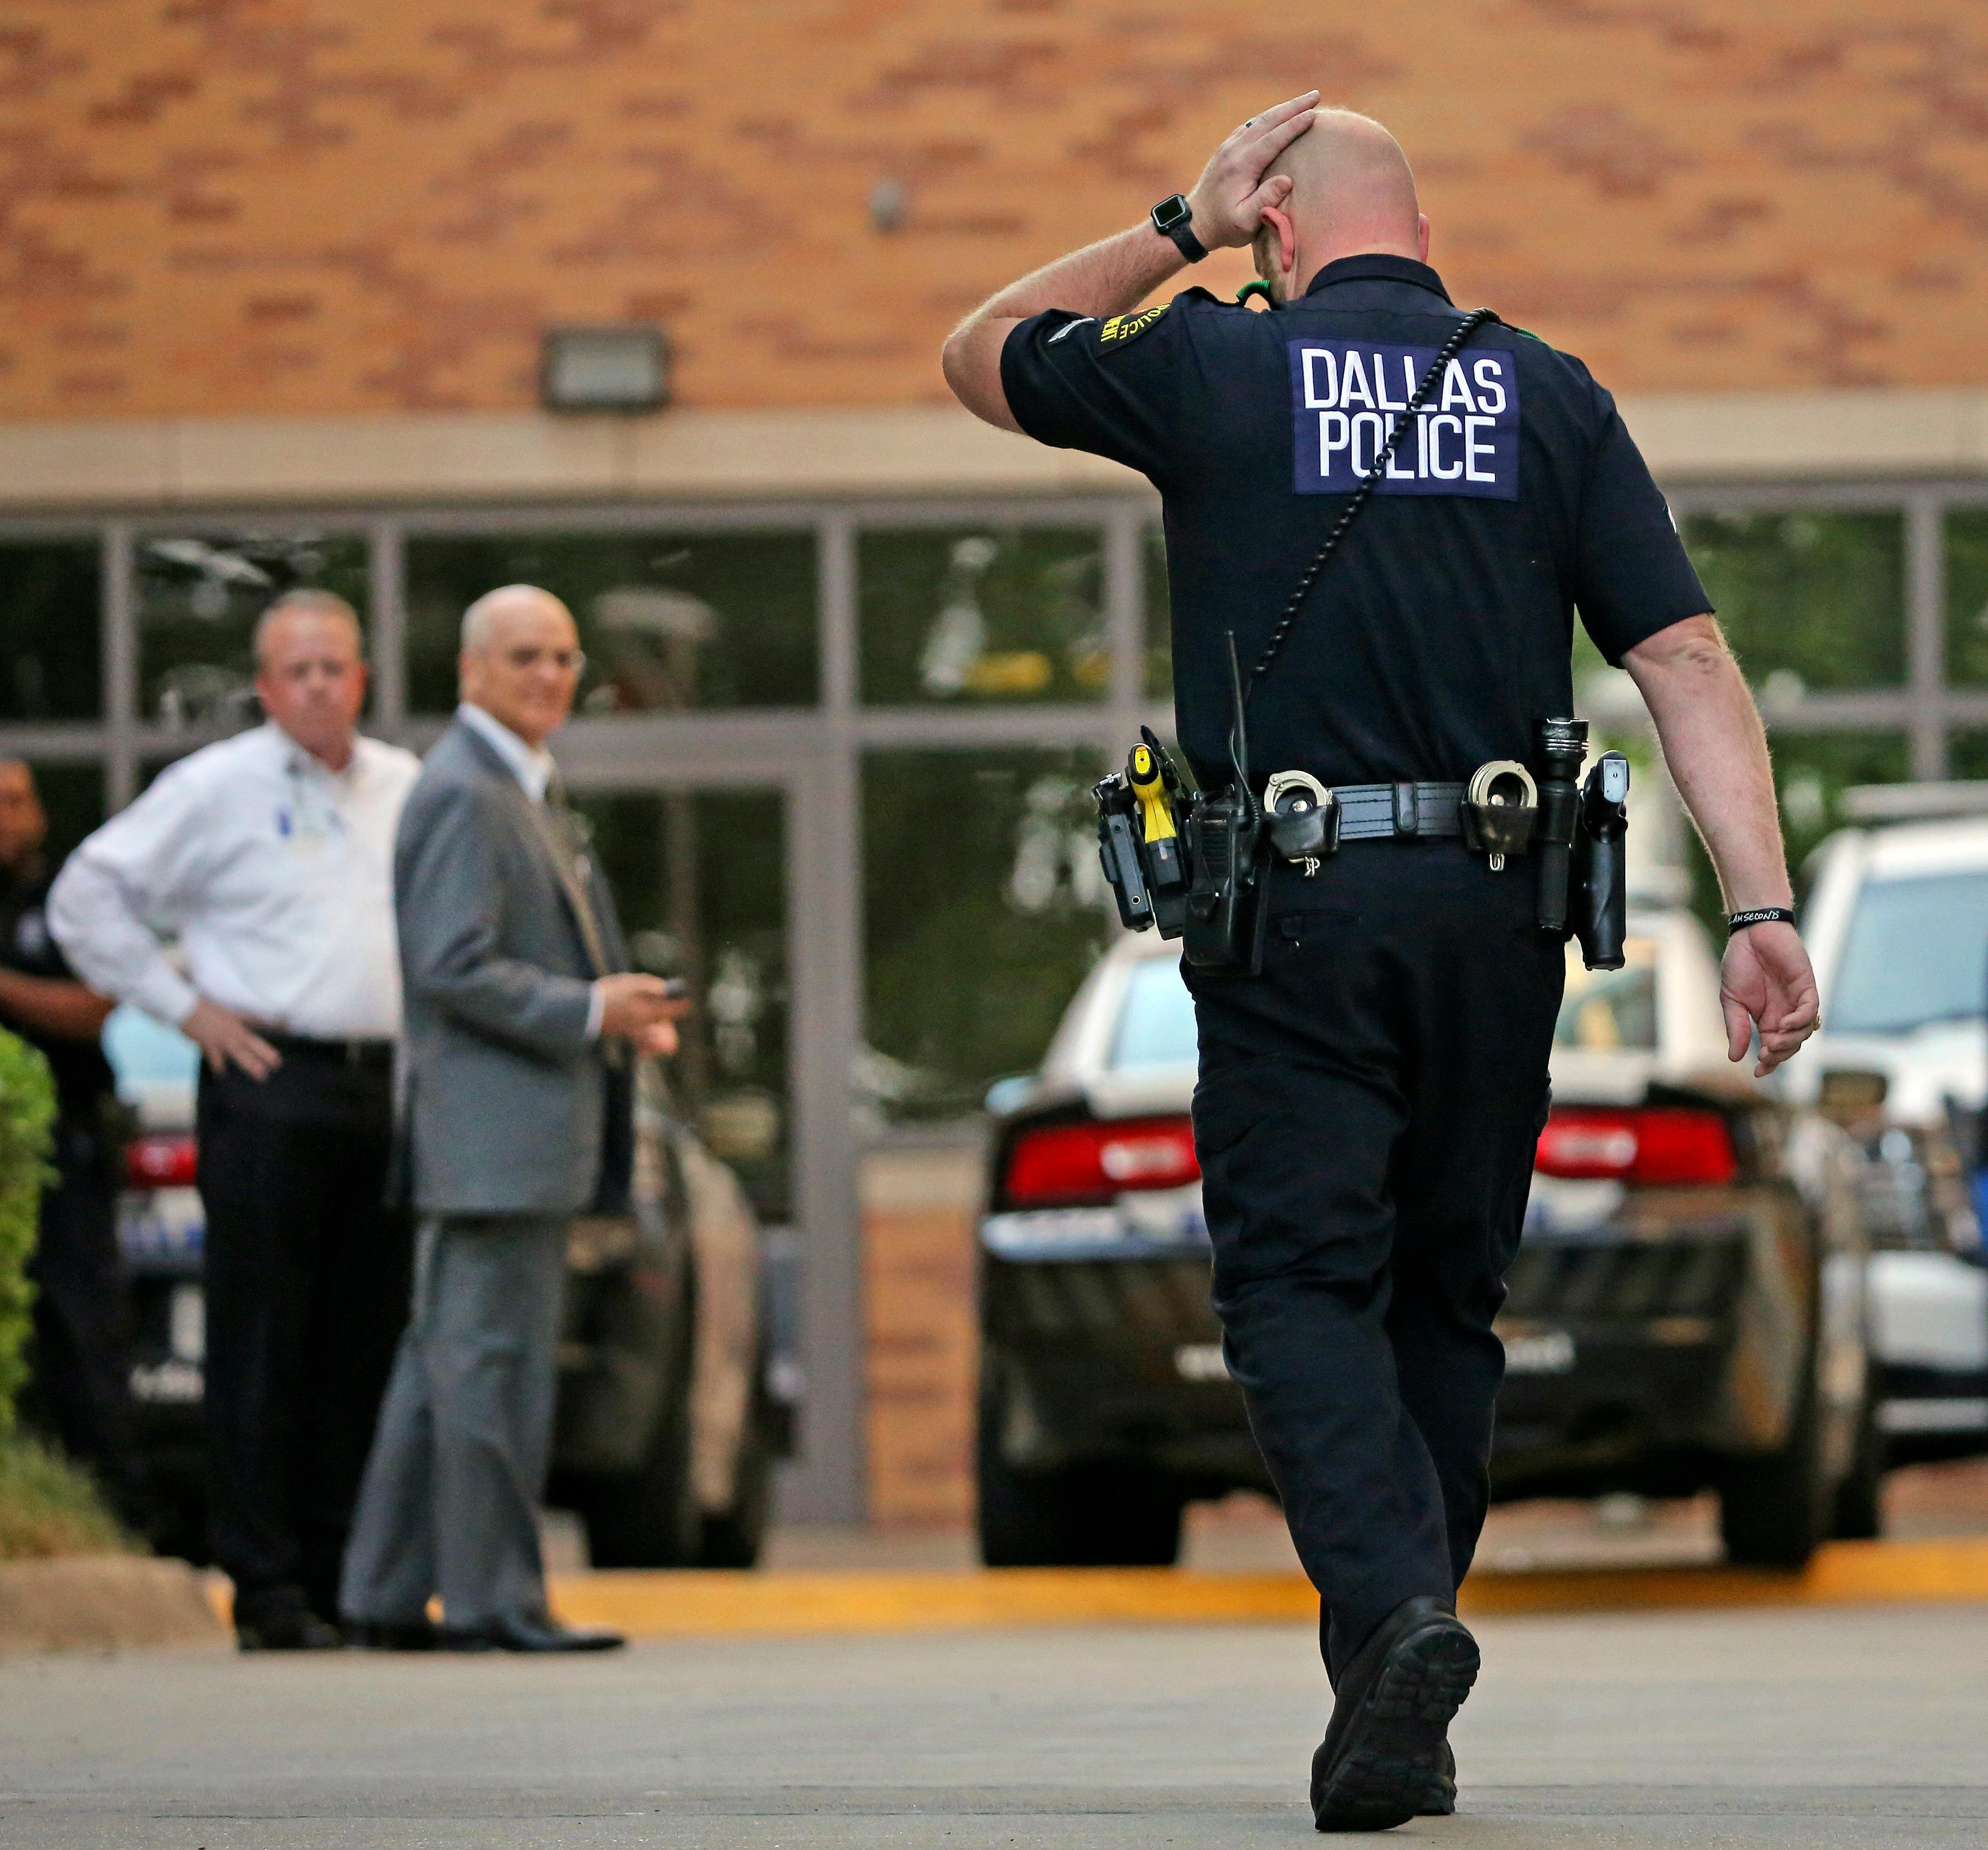 A Dallas Police officer walks to the entrance of the emergency room at Presbyterian Hospital, Tuesday, April 24, 2018, in Dallas, following a shooting at an area Home Depot where two police officers and a civilian were shot. The officers were critically wounded in the shooting, according to officials. (Louis DeLuca/The Dallas Morning News via AP)